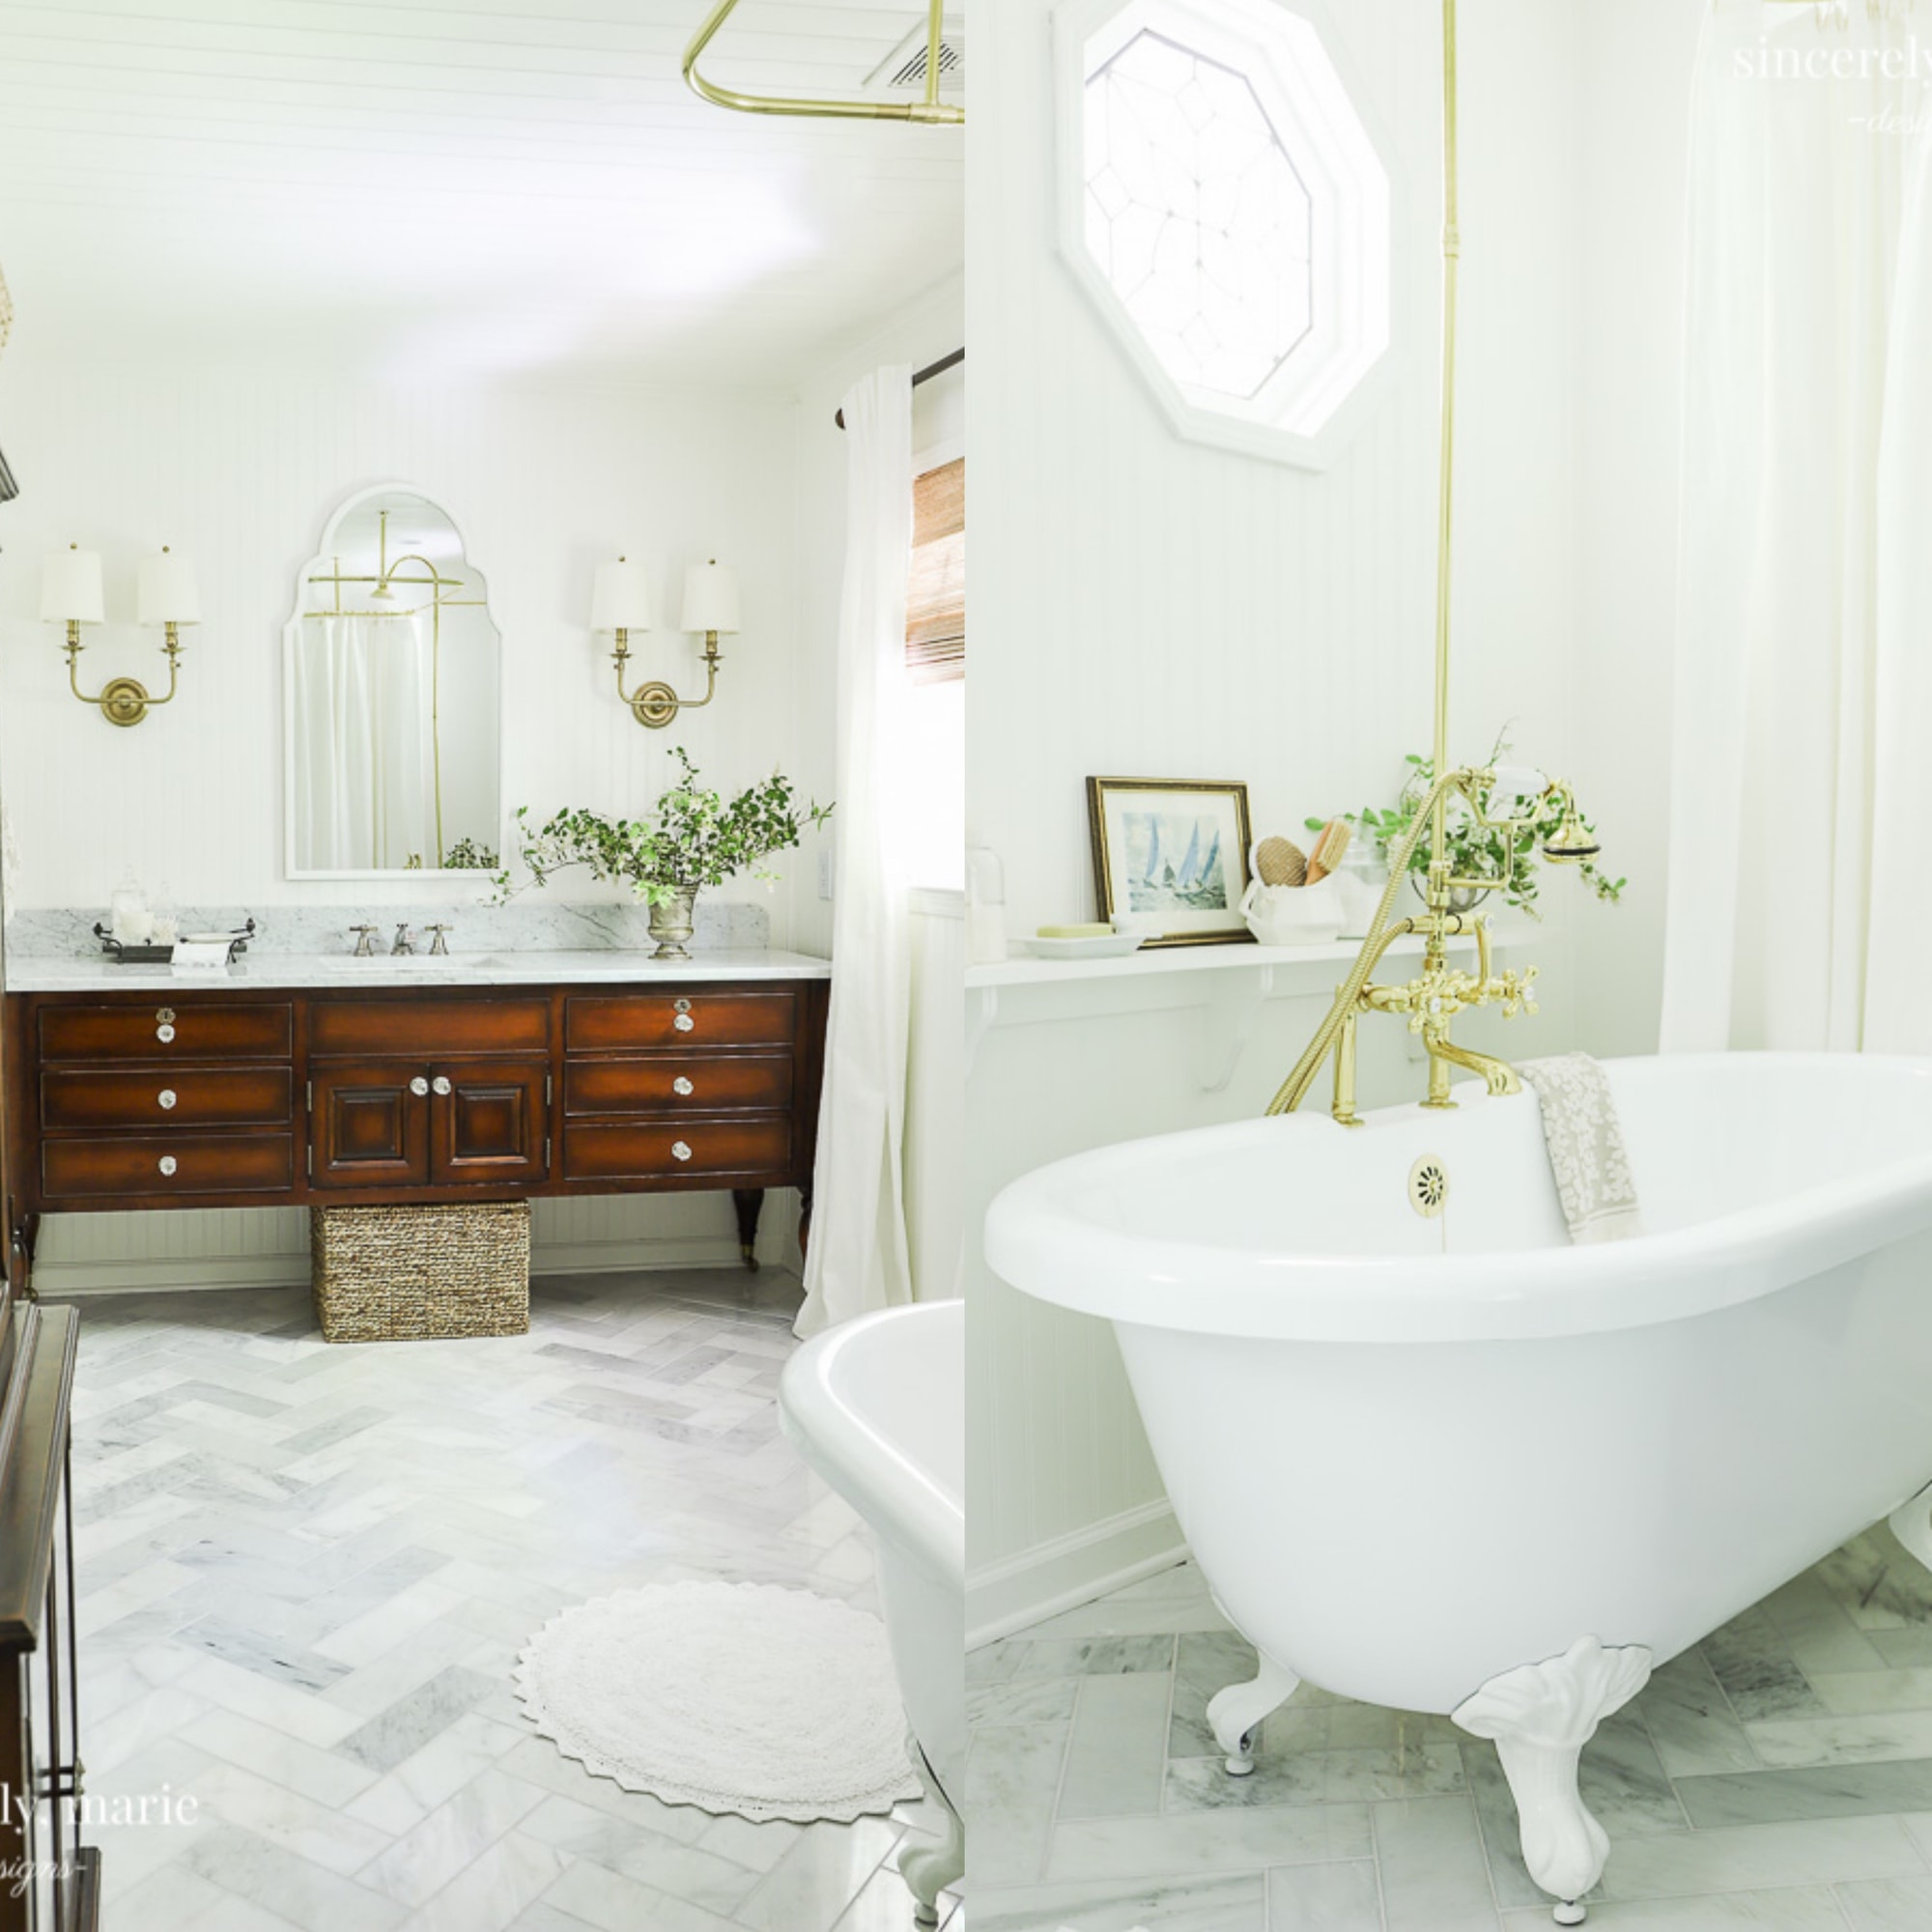 chic farmhouse bathroom with large tub